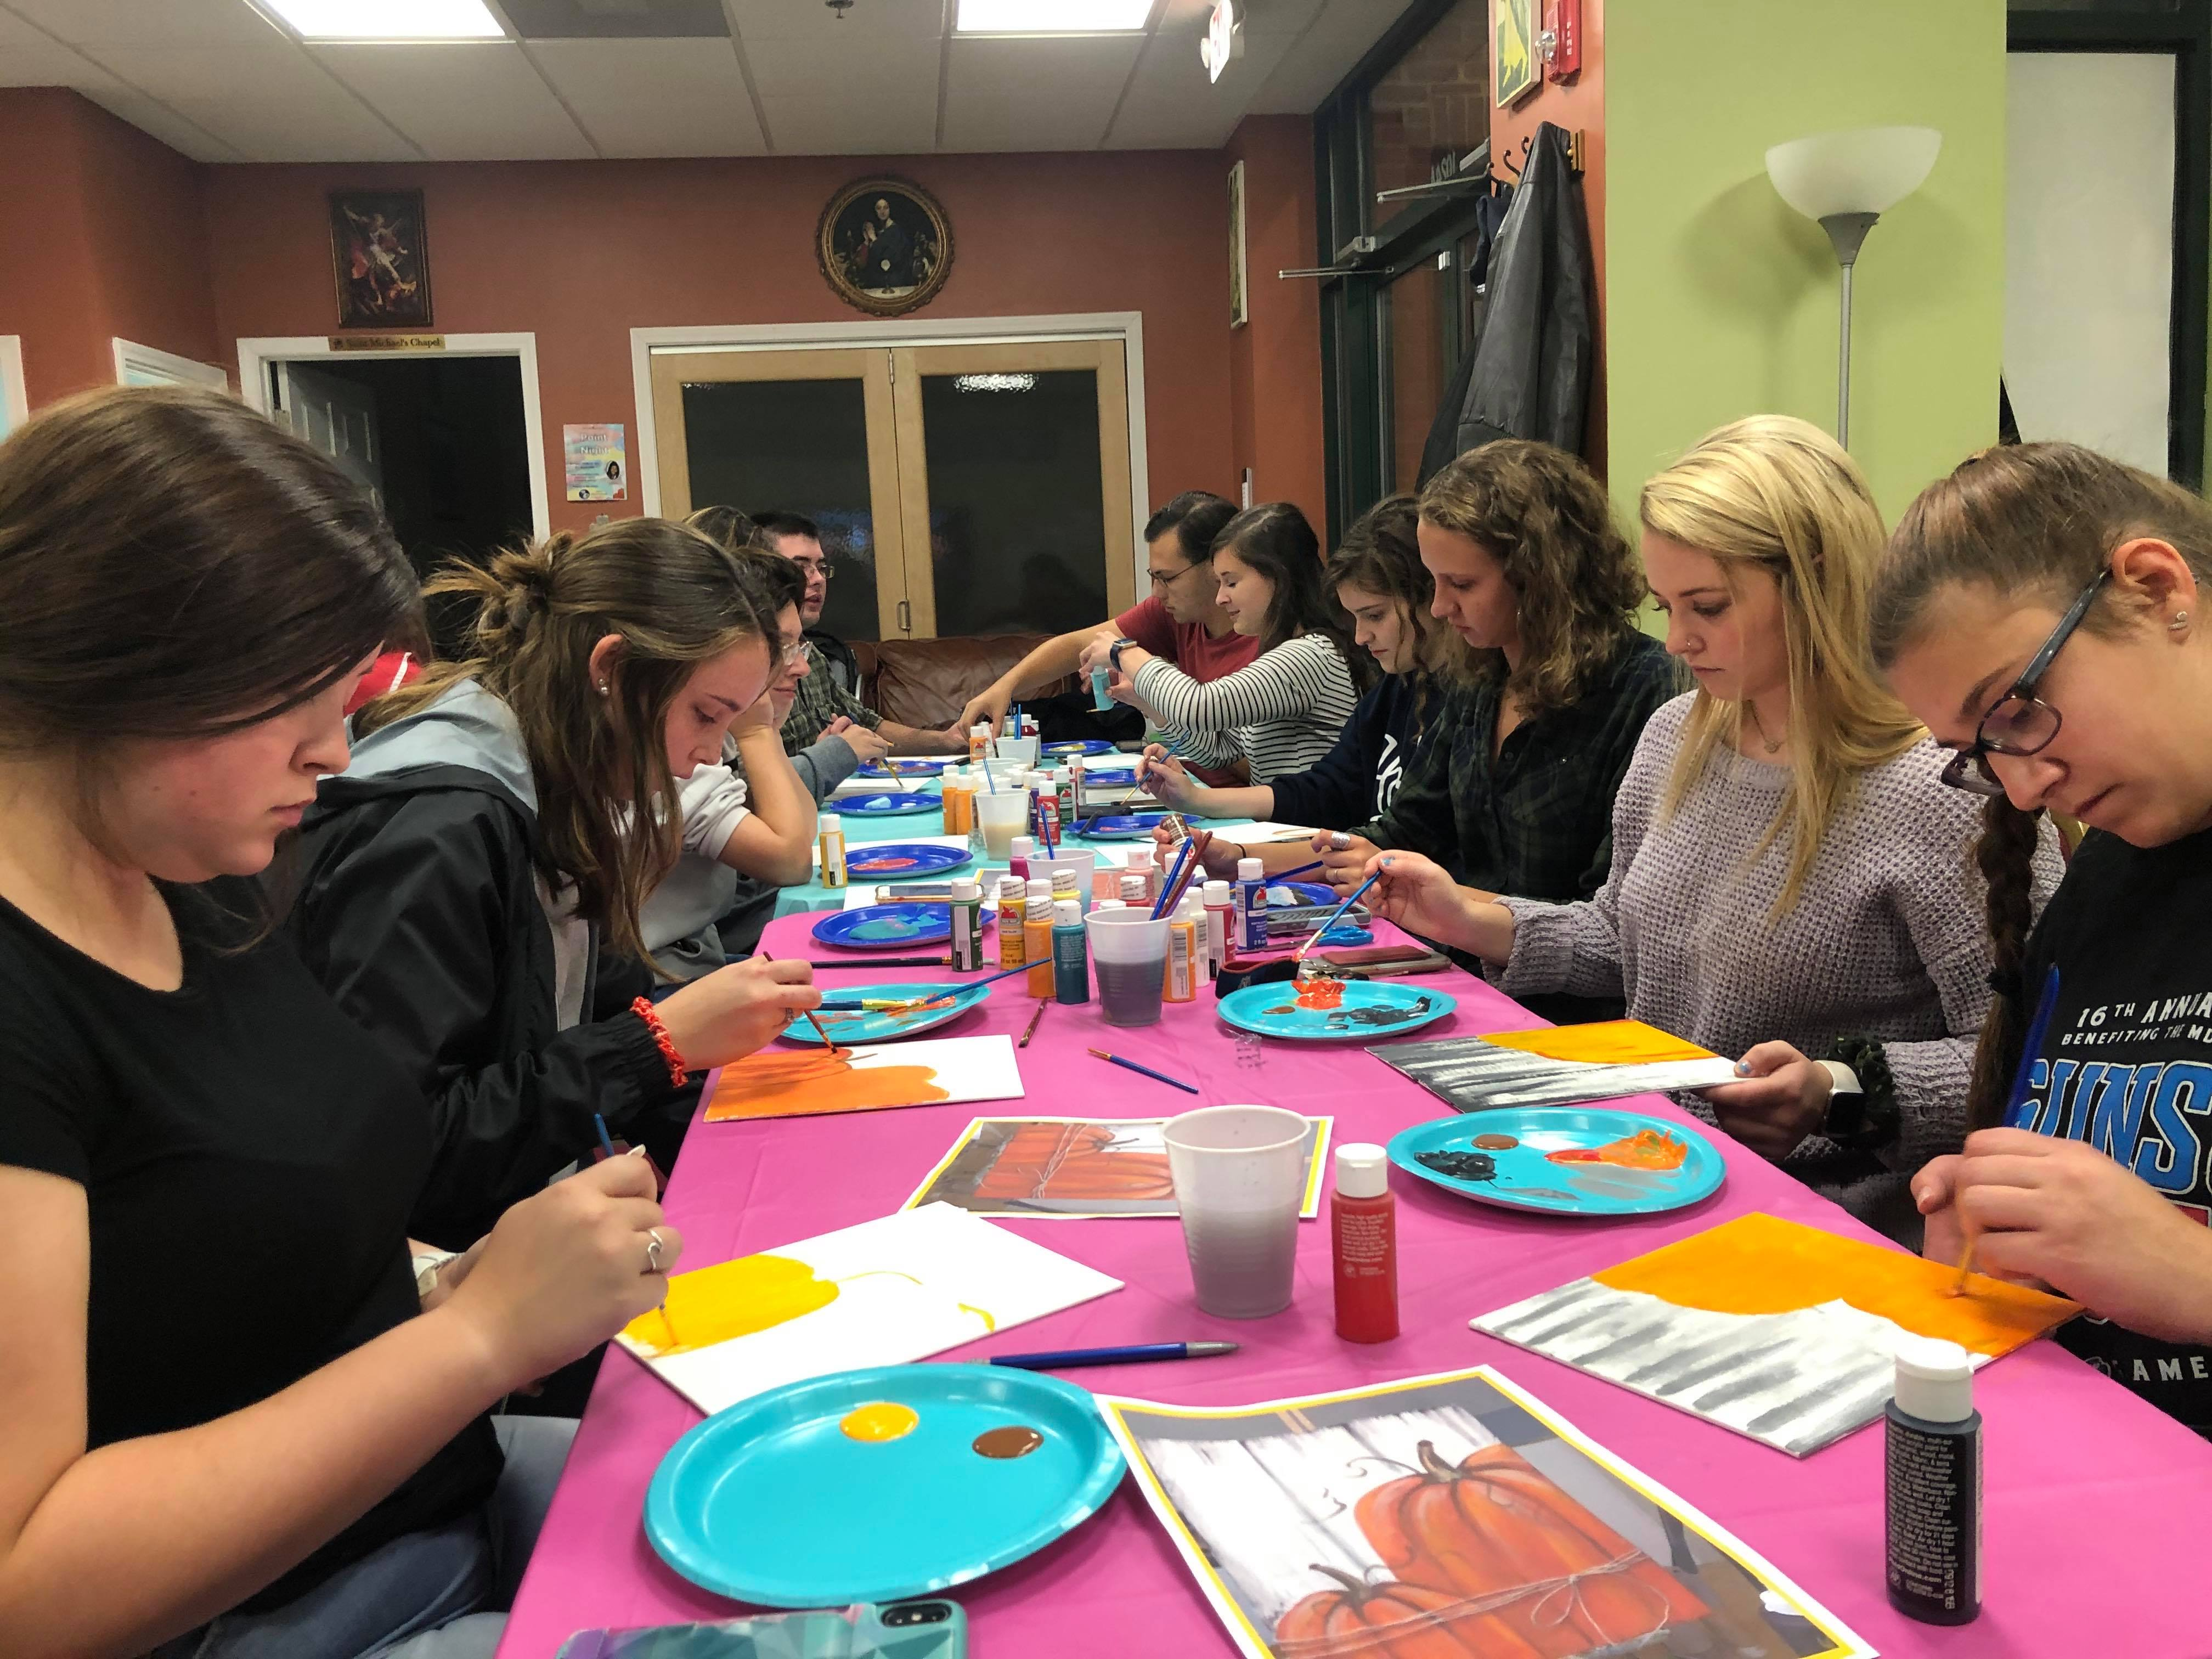 Paint Night Fun!